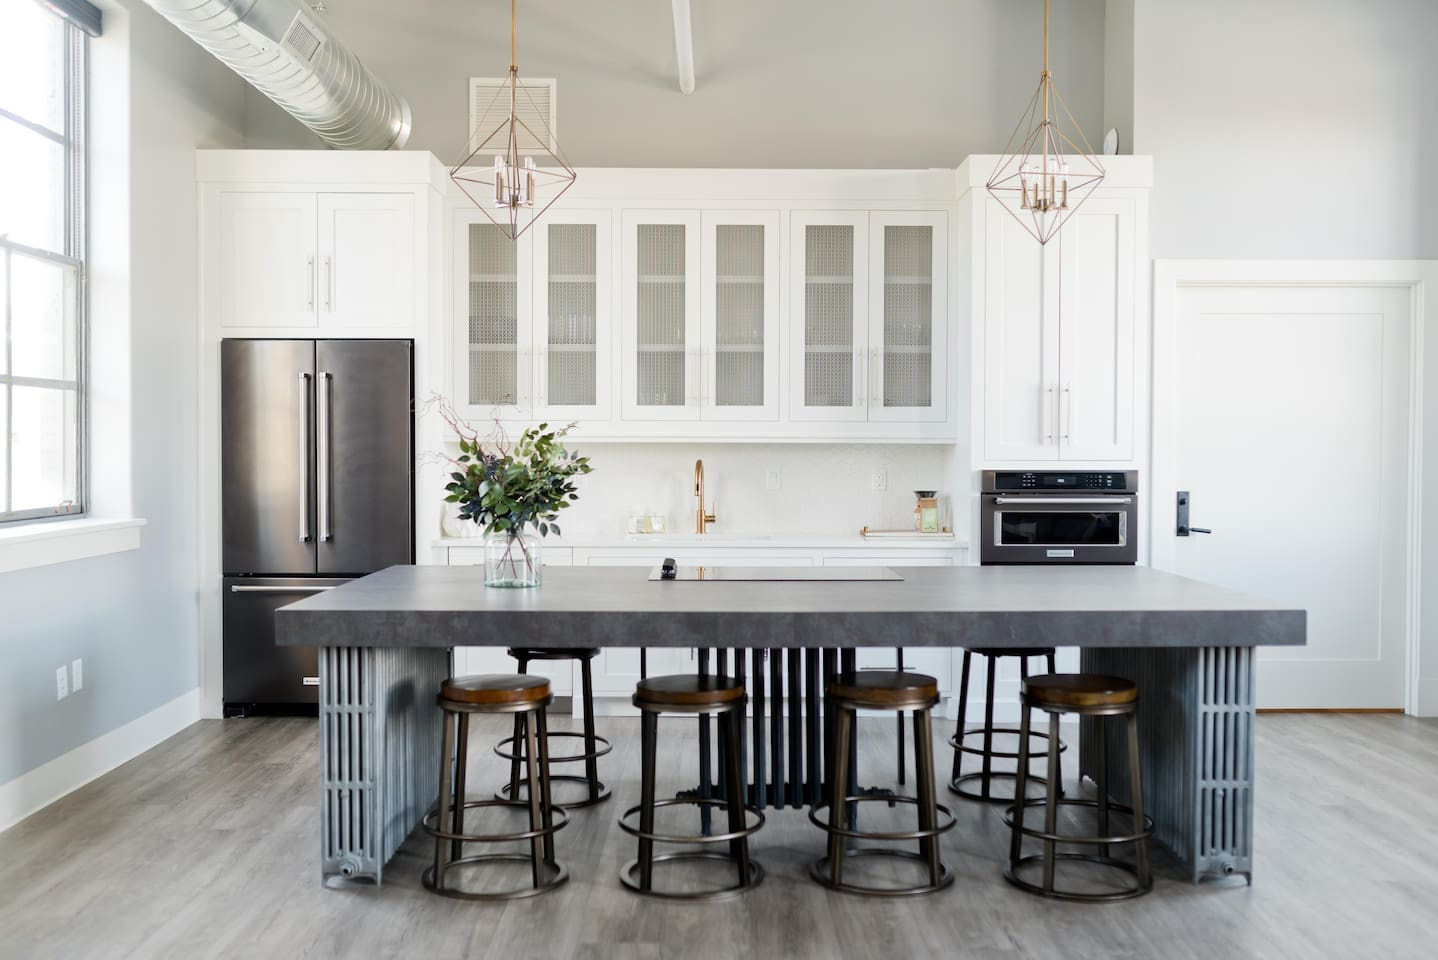 """The South Flat provides comfortable space for dining, cooking and enough lounge space for guests while enjoying a 65"""" smart TV. This gathering space provides a comfortable place to cook a meal, play games, work on a project or engage in conversation."""